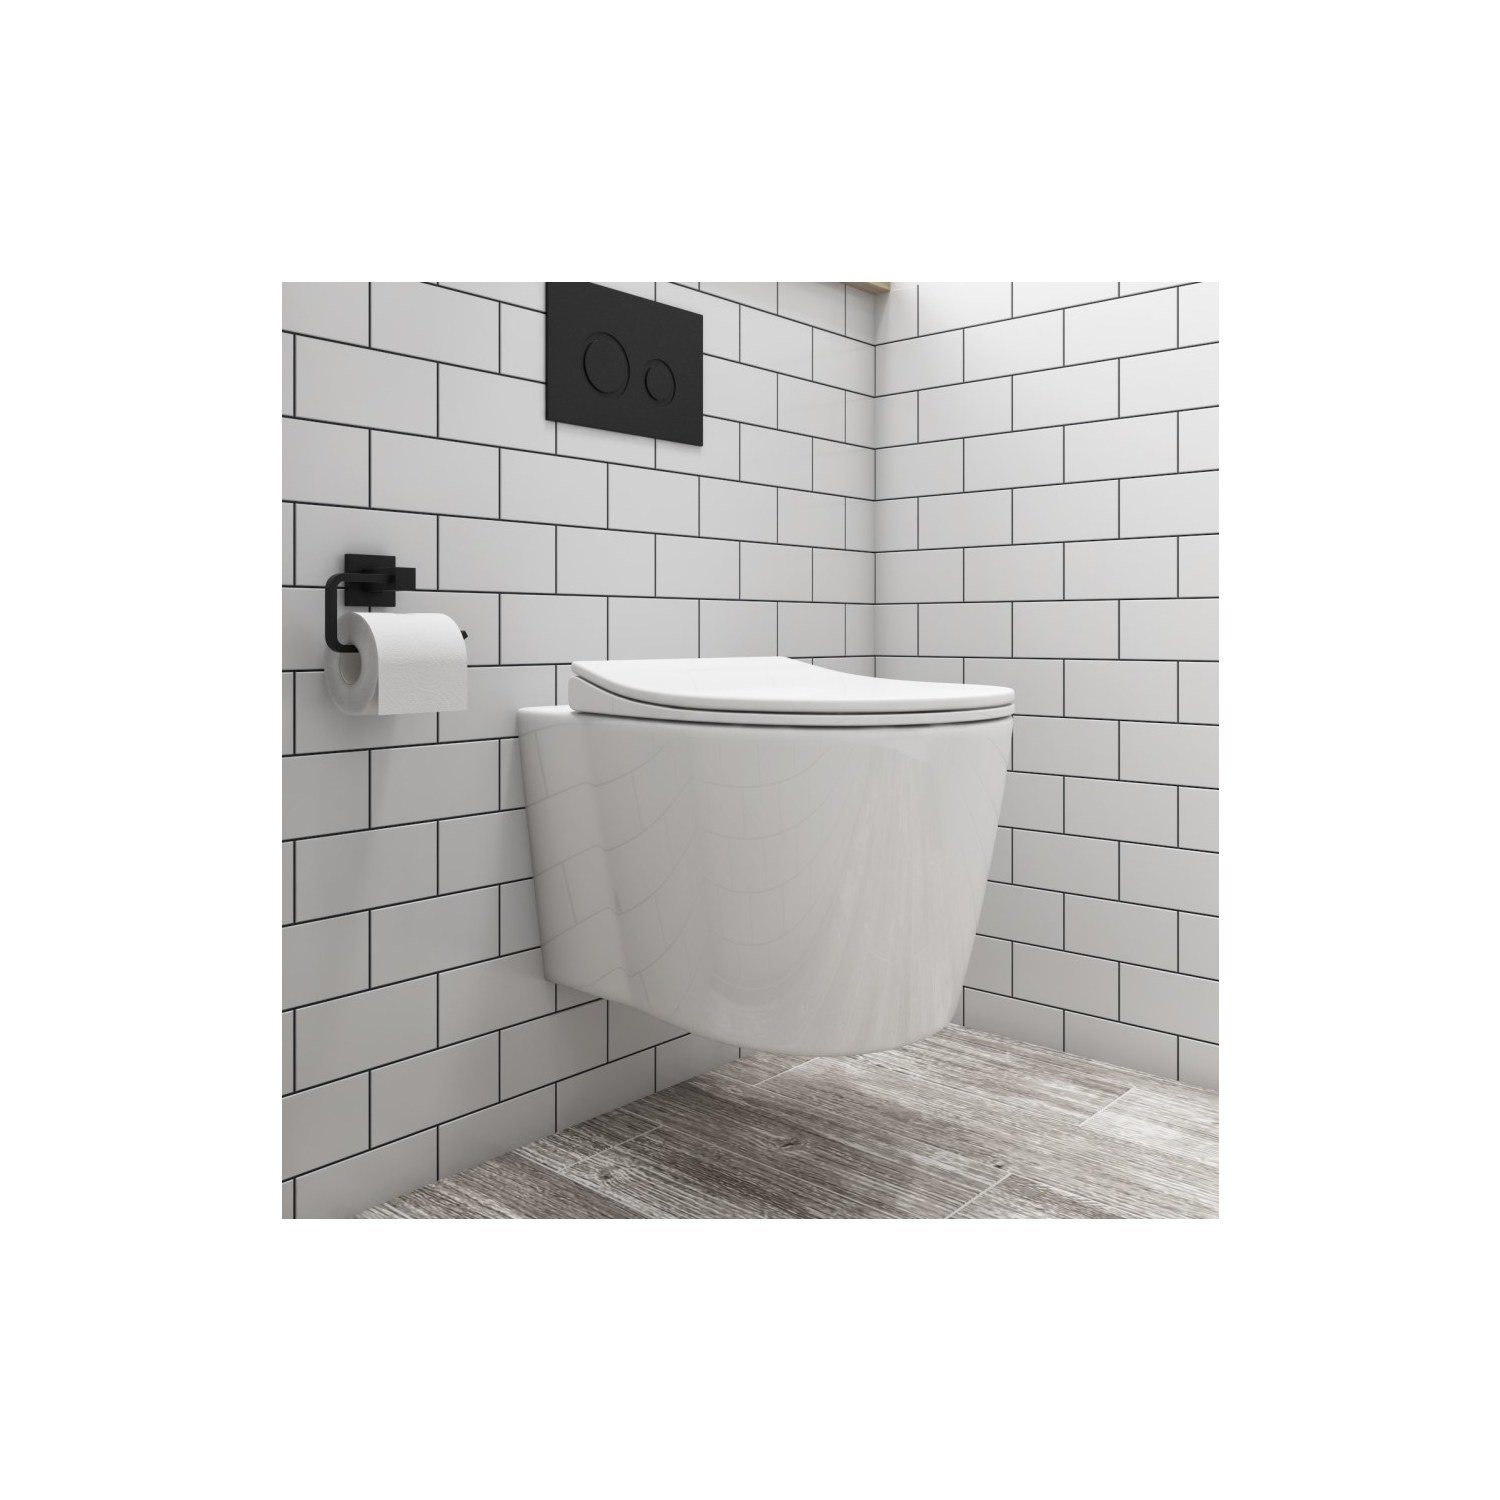 Bath & WC Wall Hung Toilet and Soft Close Seatwith Matt Black Flush Plate 1160mm Frame and Cistern - Alcor